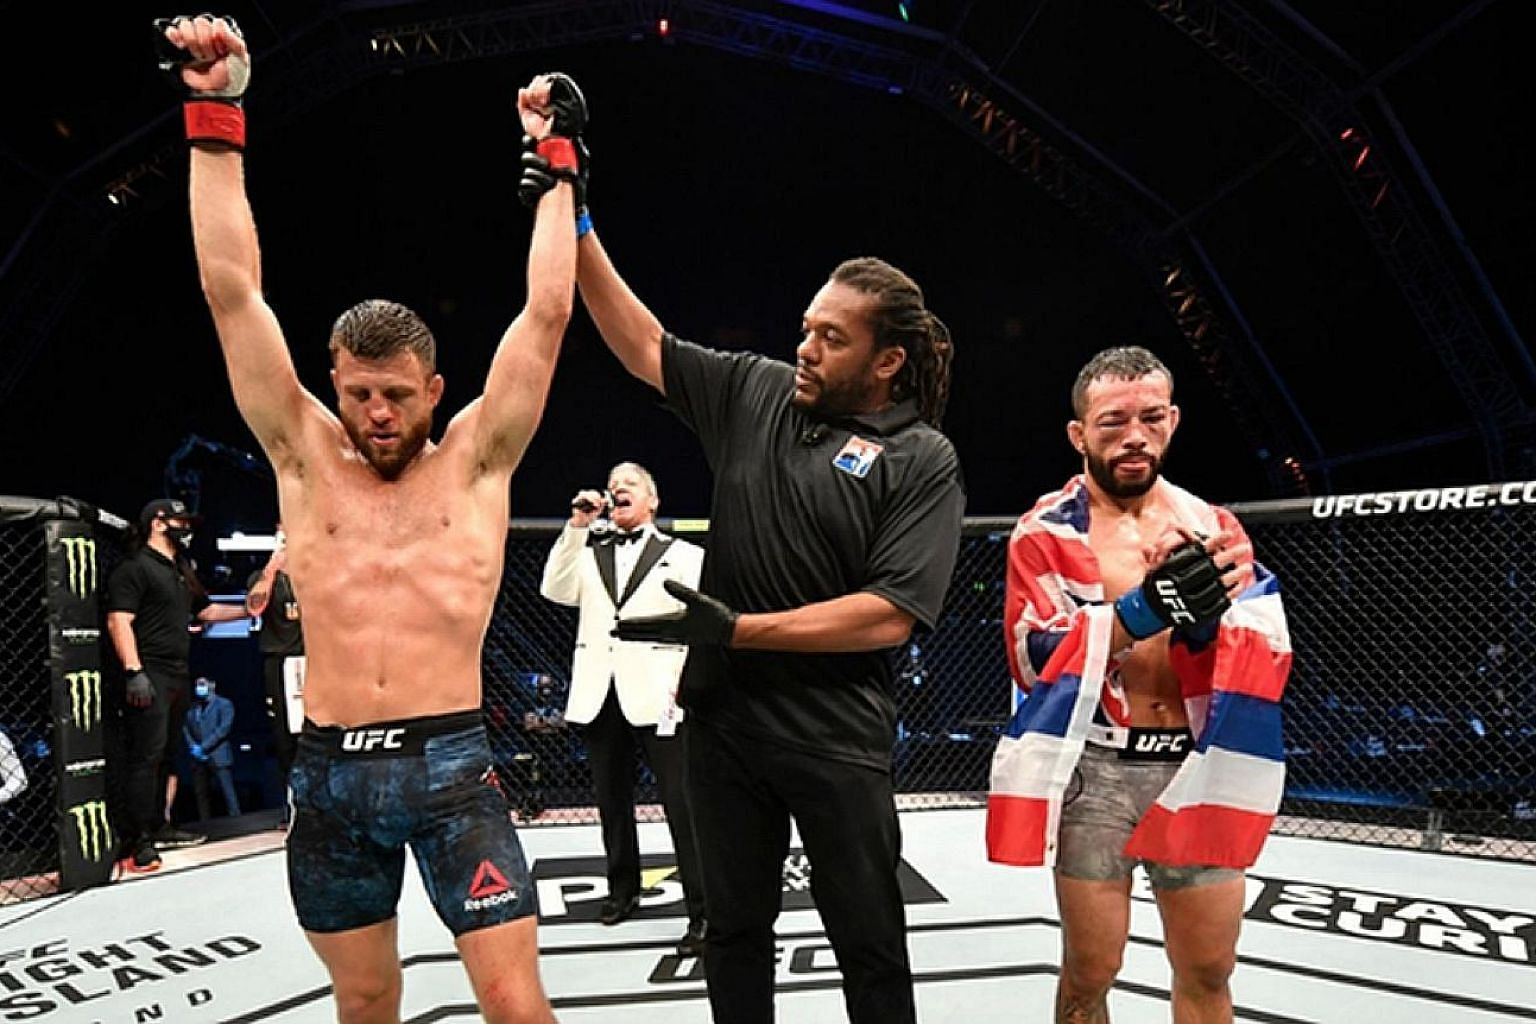 The referee lifting the hand of Calvin Kattar after he gave a power-packed boxing display against Dan Ige to win the UFC Fight Night 172 featherweight main event by unanimous decision. Wednesday's victory on Abu Dhabi's Yas Island made American Katta